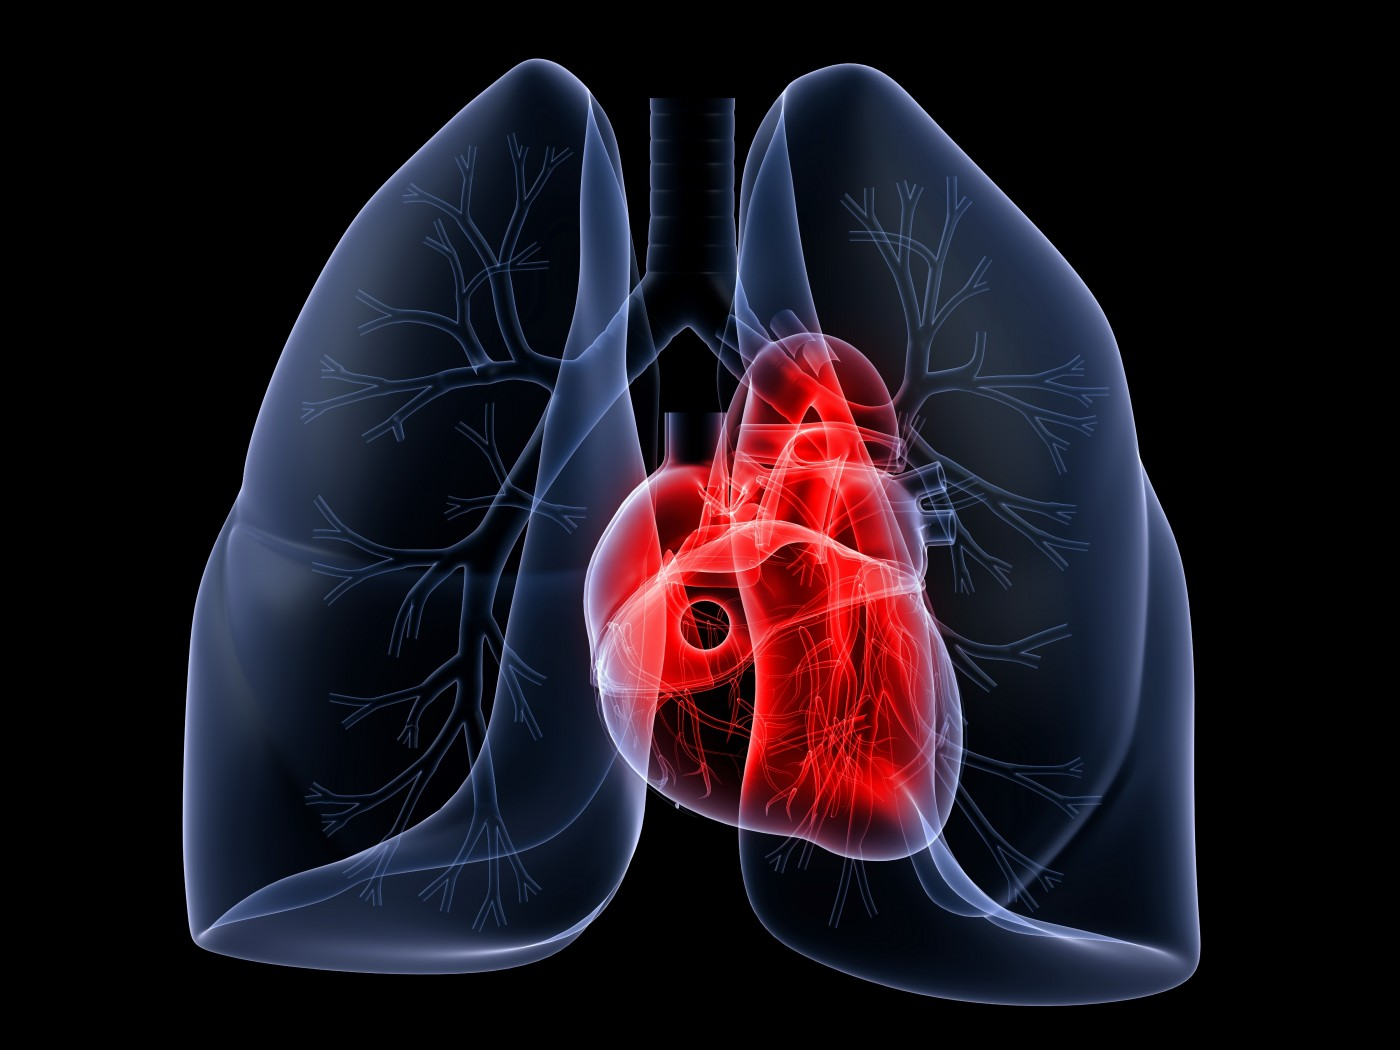 New Cellular Proliferation Protein Observed in Idiopathic Pulmonary Arterial Hypertension